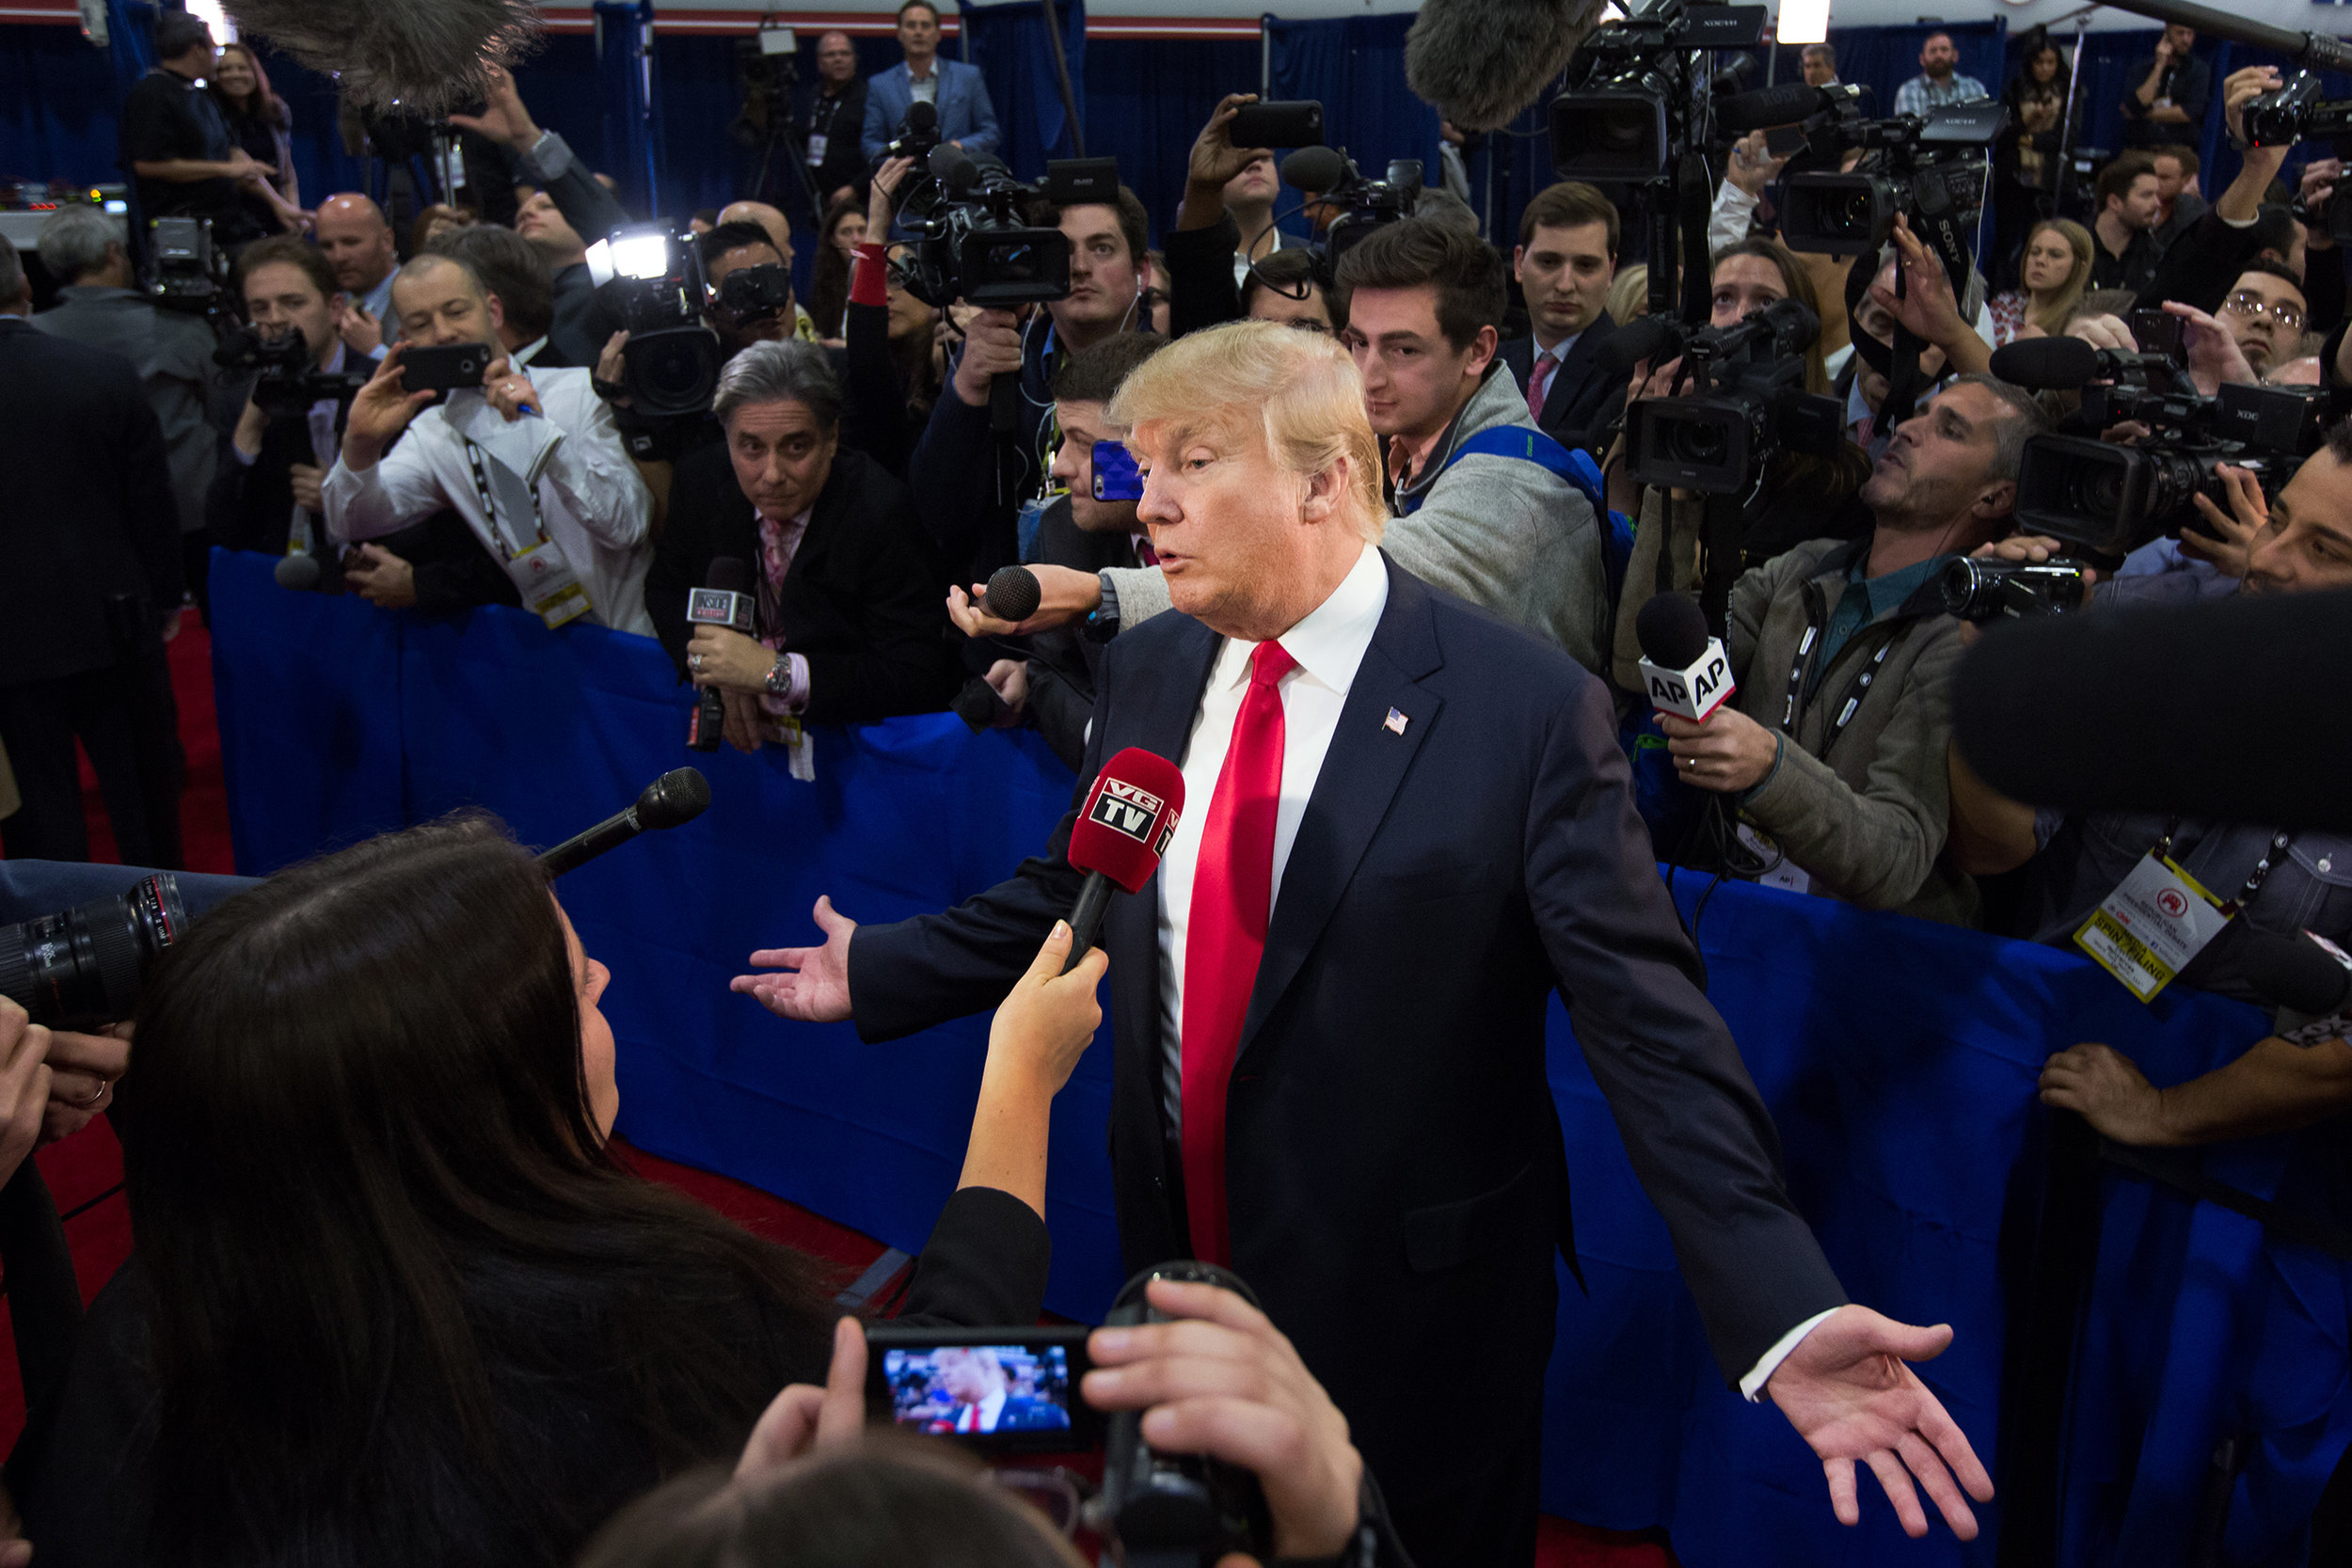 Donald Trump speaking to reporters after a presidential GOP debate in Las Vegas.